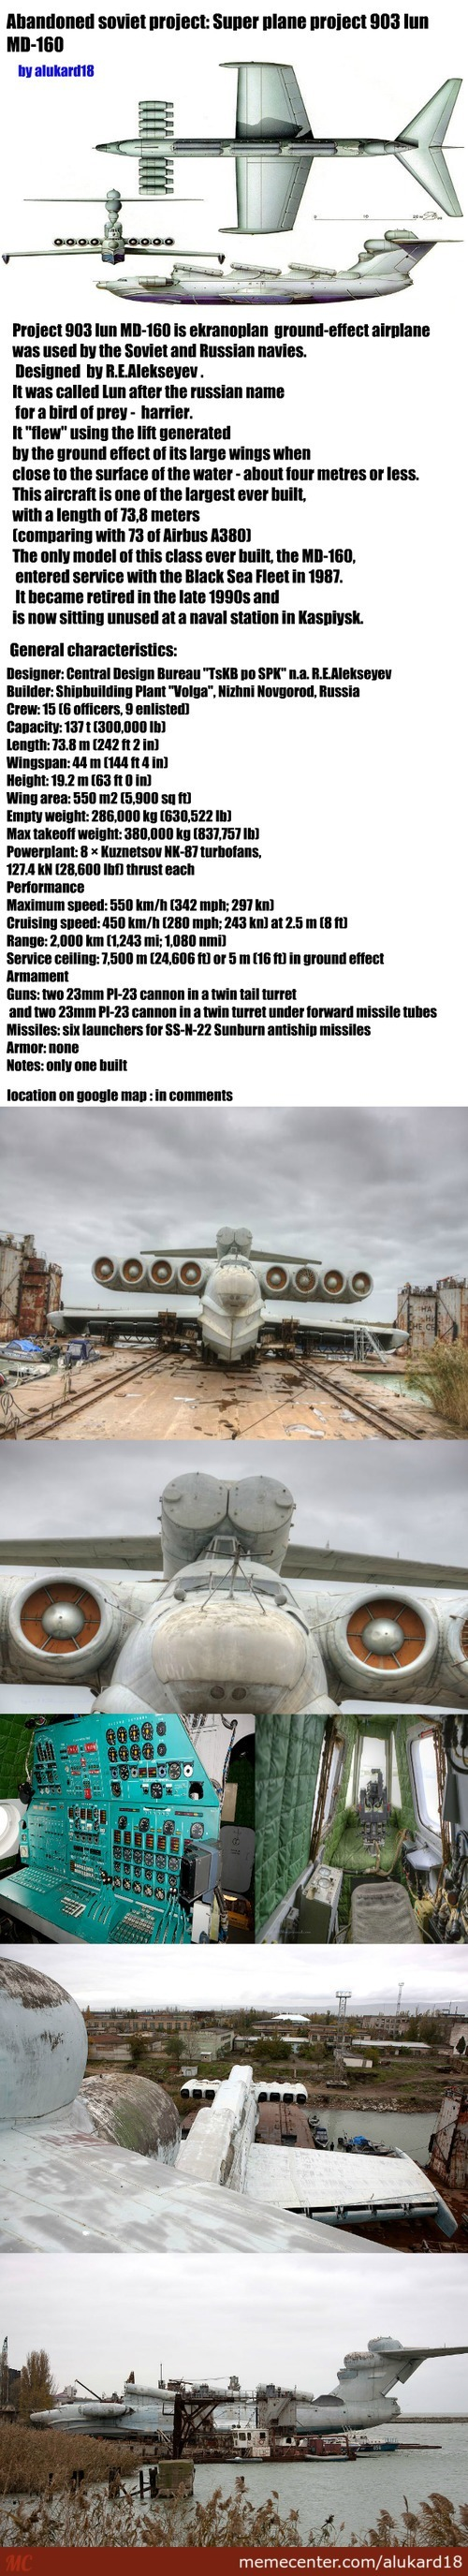 Abandoned Soviet Project: Super Plane Project 903 Lun Md-160